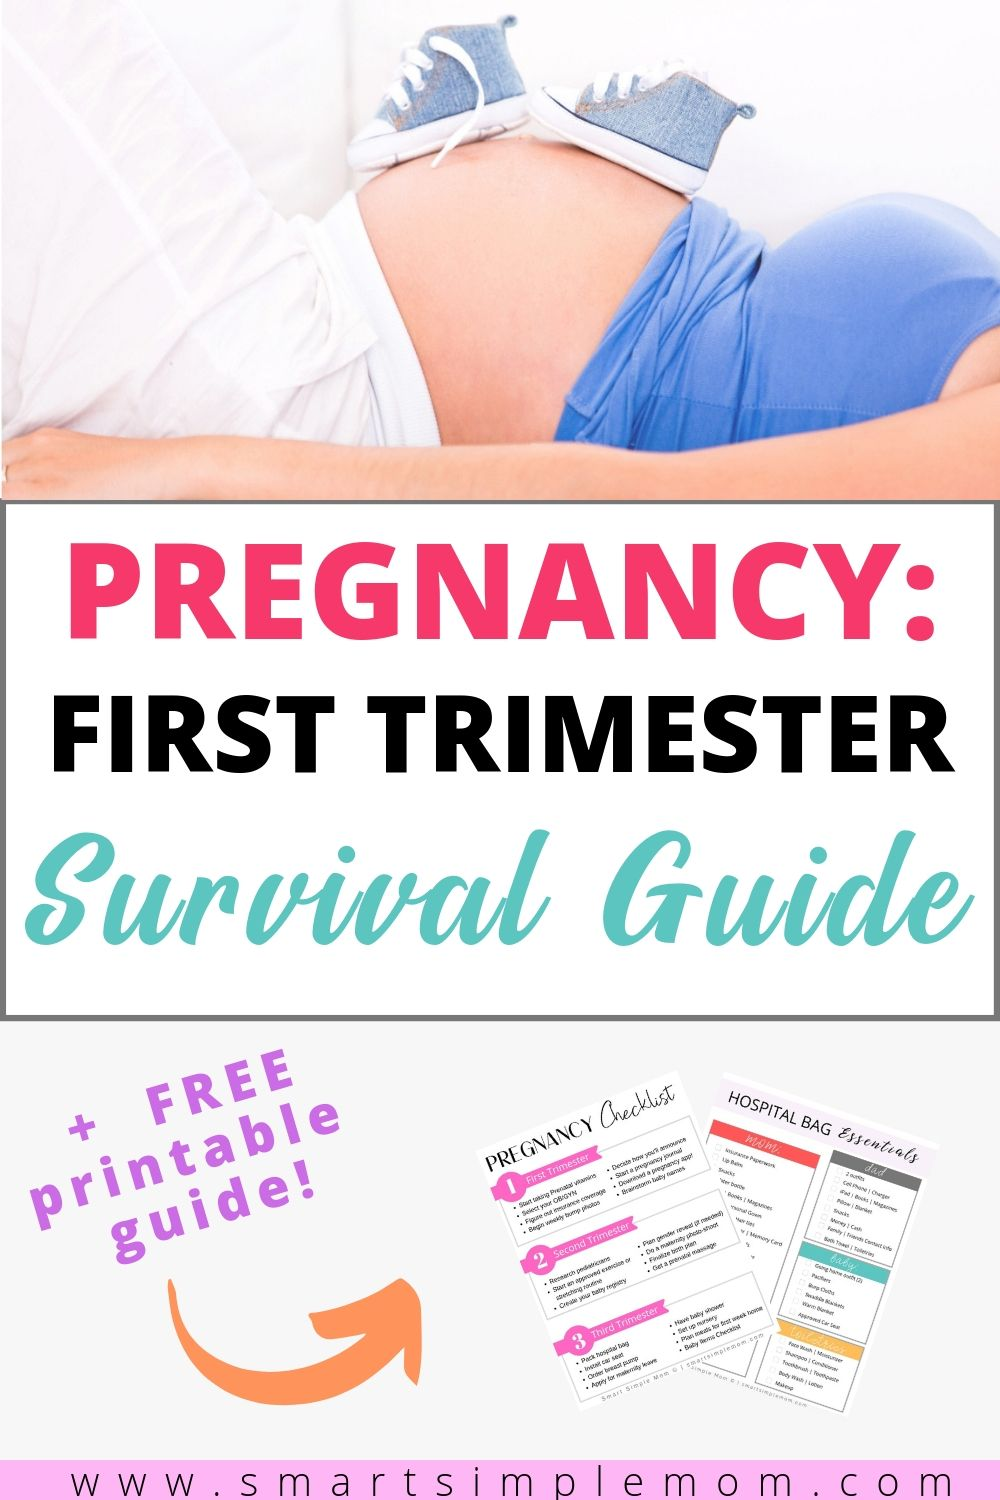 The first trimester can be rough. Here are my TOP TIPS on surviving the FIRST TRIMESTER of pregnancy and actually enjoy this amazing (yet overwhelming) journey!